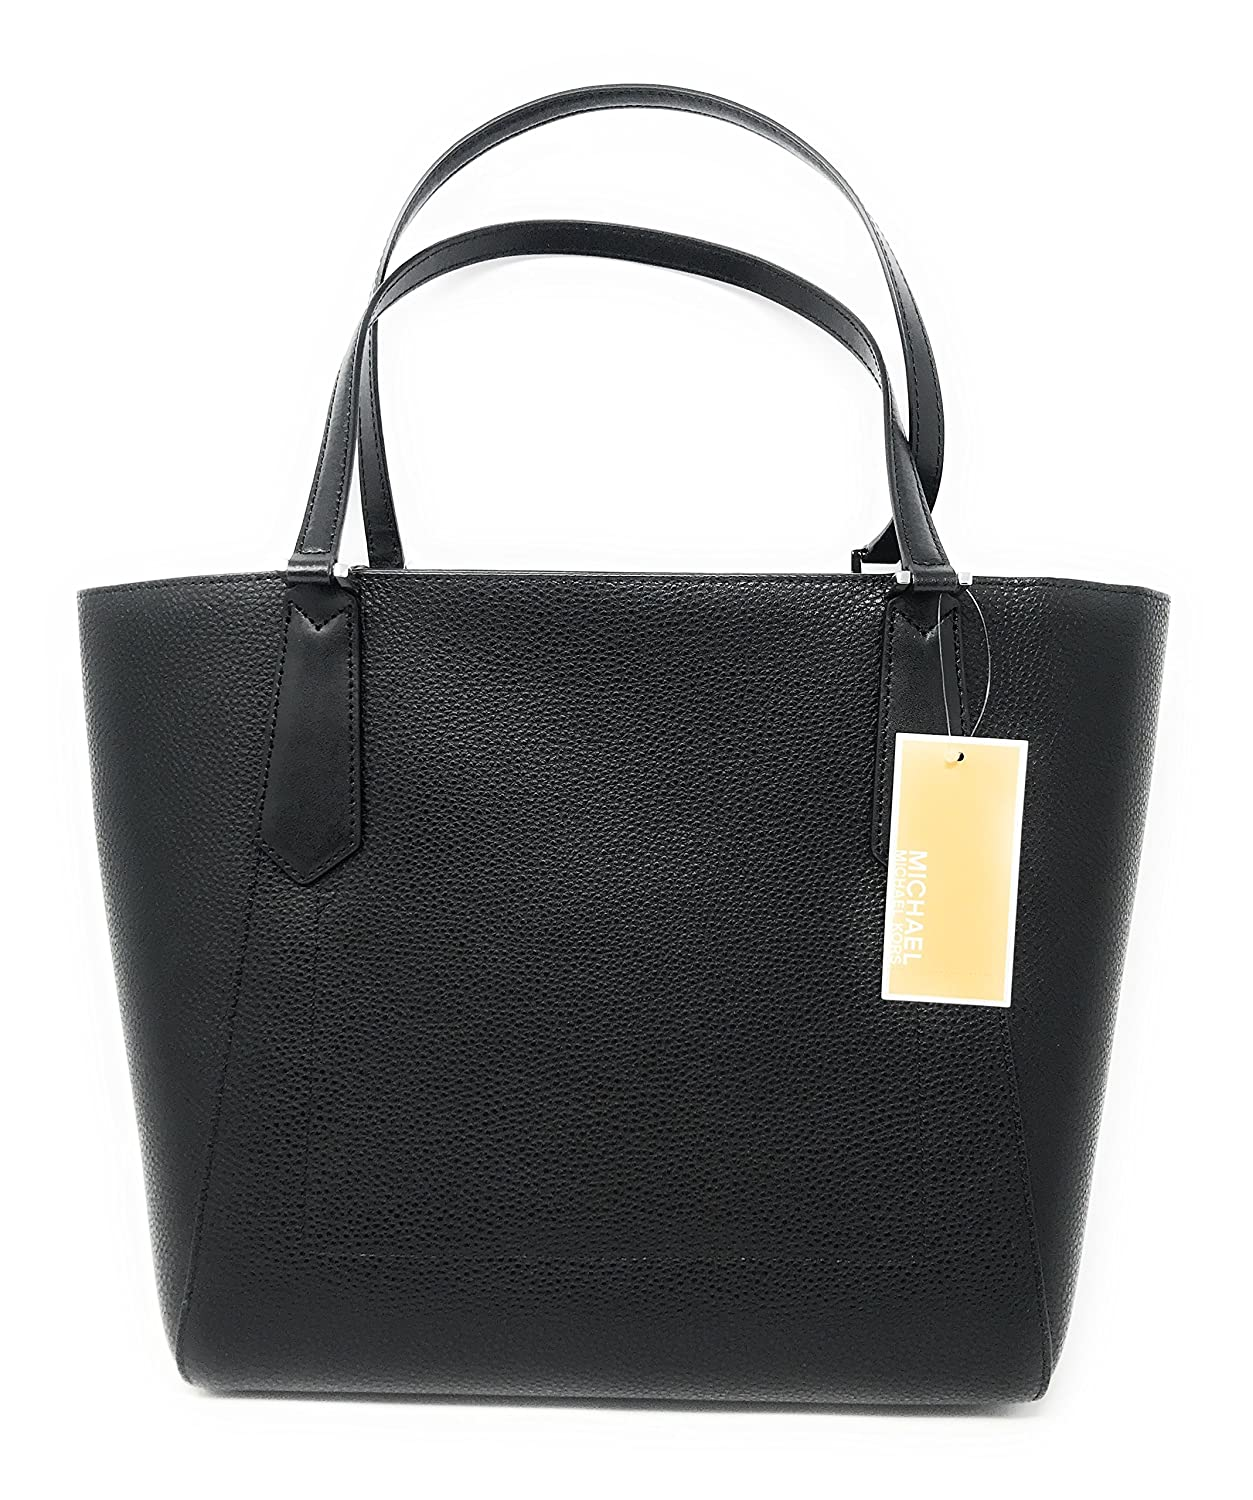 f666dc4569102 Amazon.com  Michael Kors Kimberly LG Bonded Leather Tote Bag in Black   Clothing